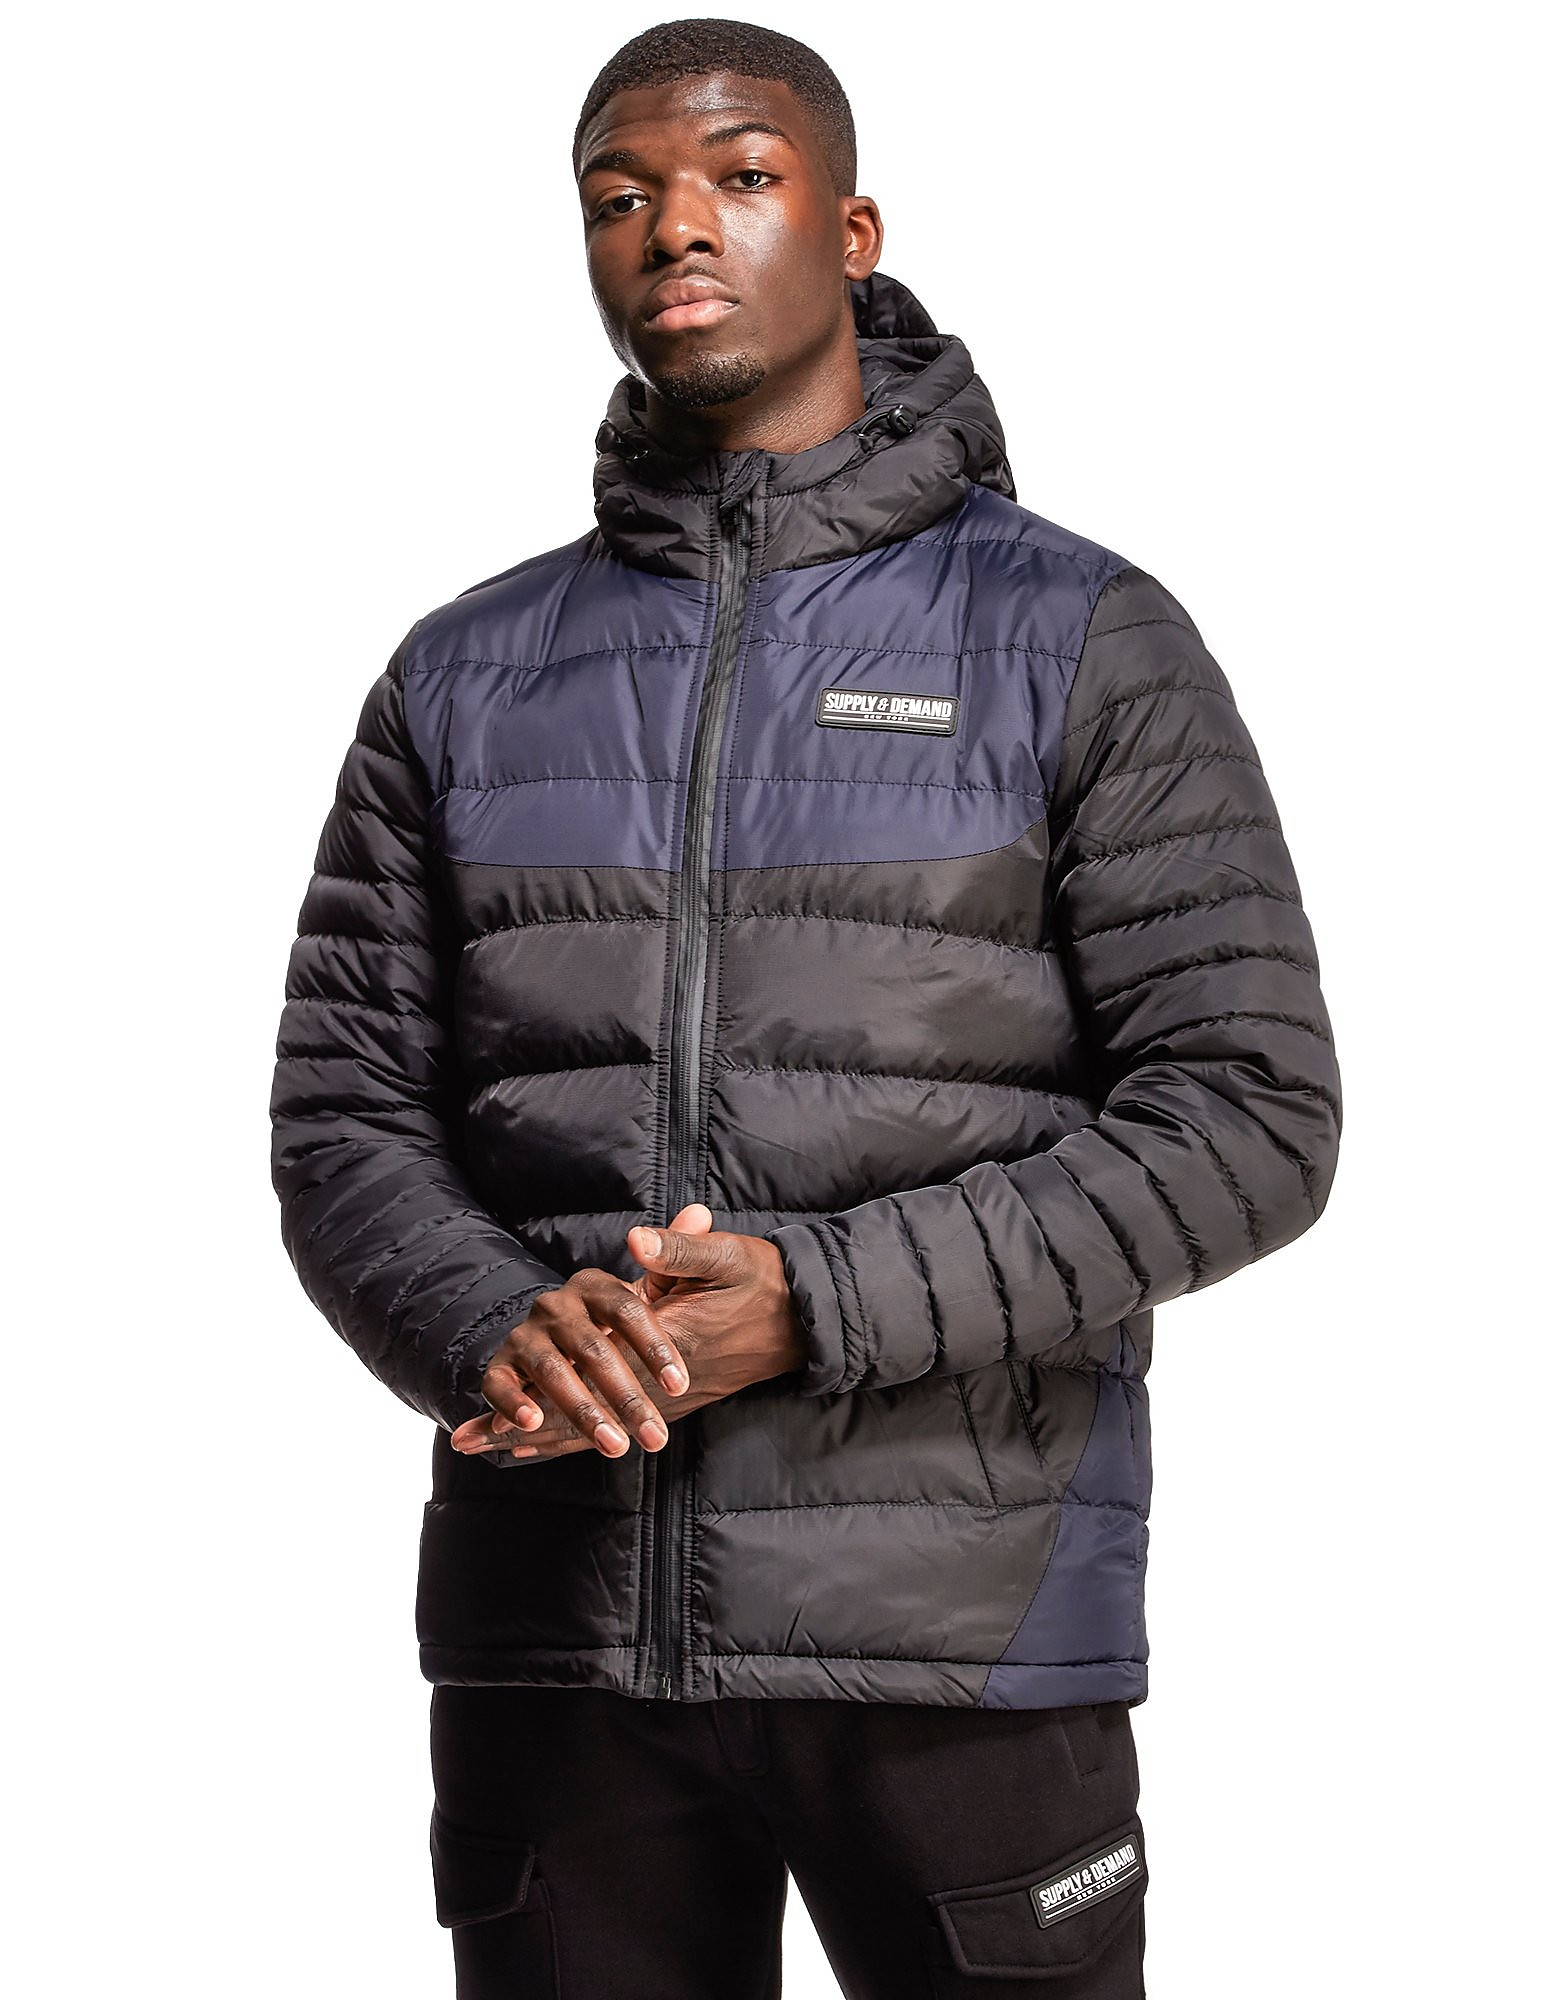 Supply & Demand Sporter Jacket